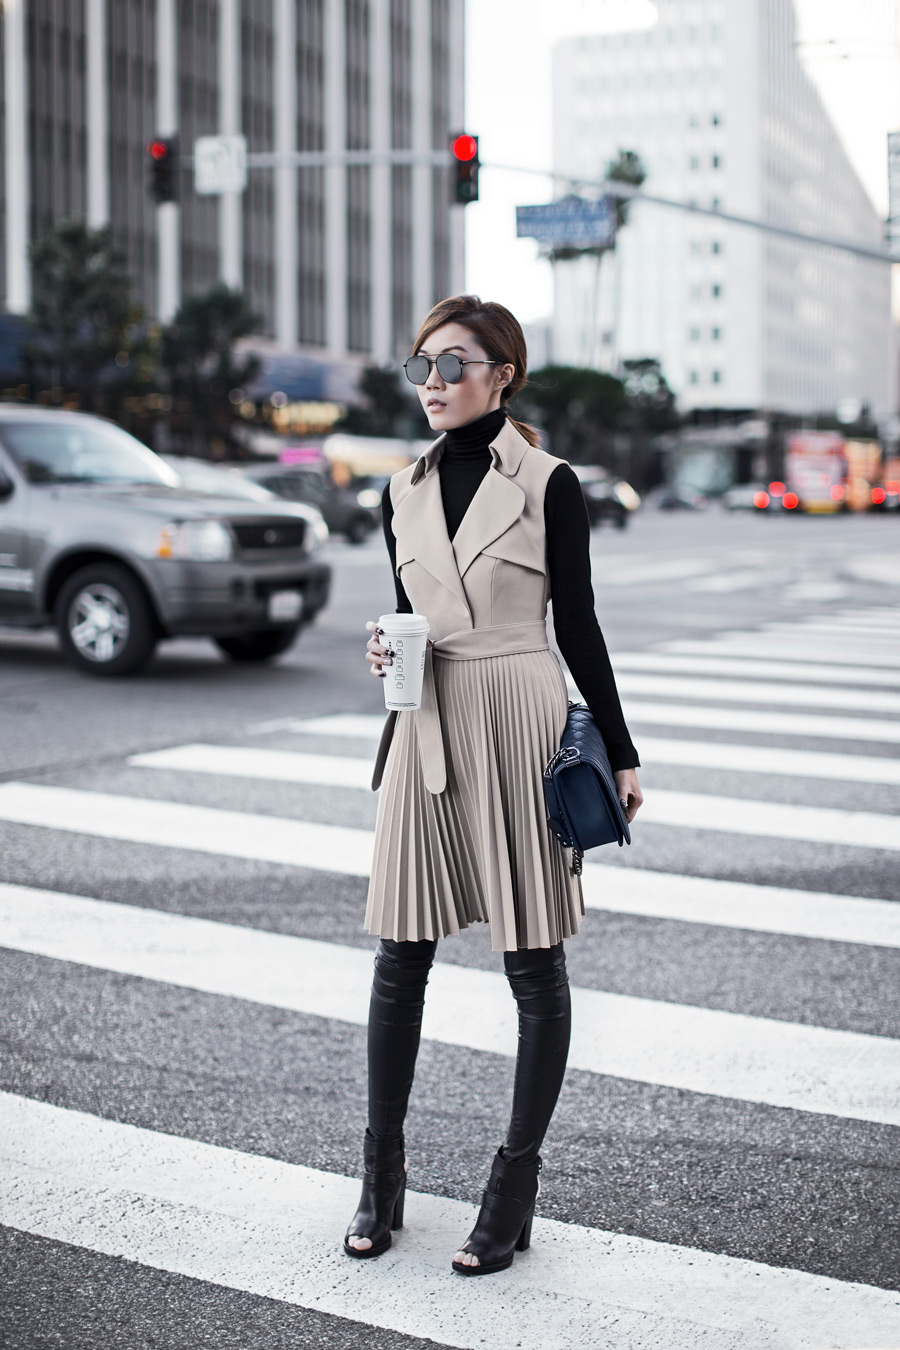 Find and save ideas about Trench coat dress on Pinterest. | See more ideas about Burberry trench coat, Trench coats and Trench coat outfit.